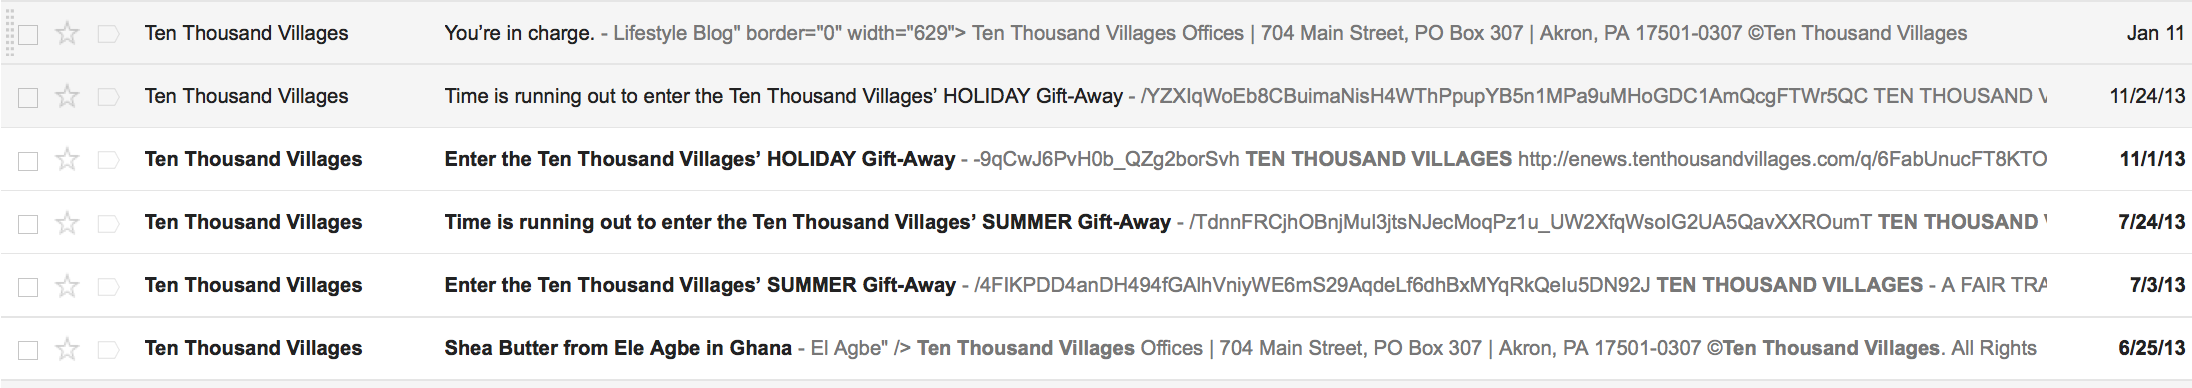 ecommerce-goodbye-10-thousand-villages